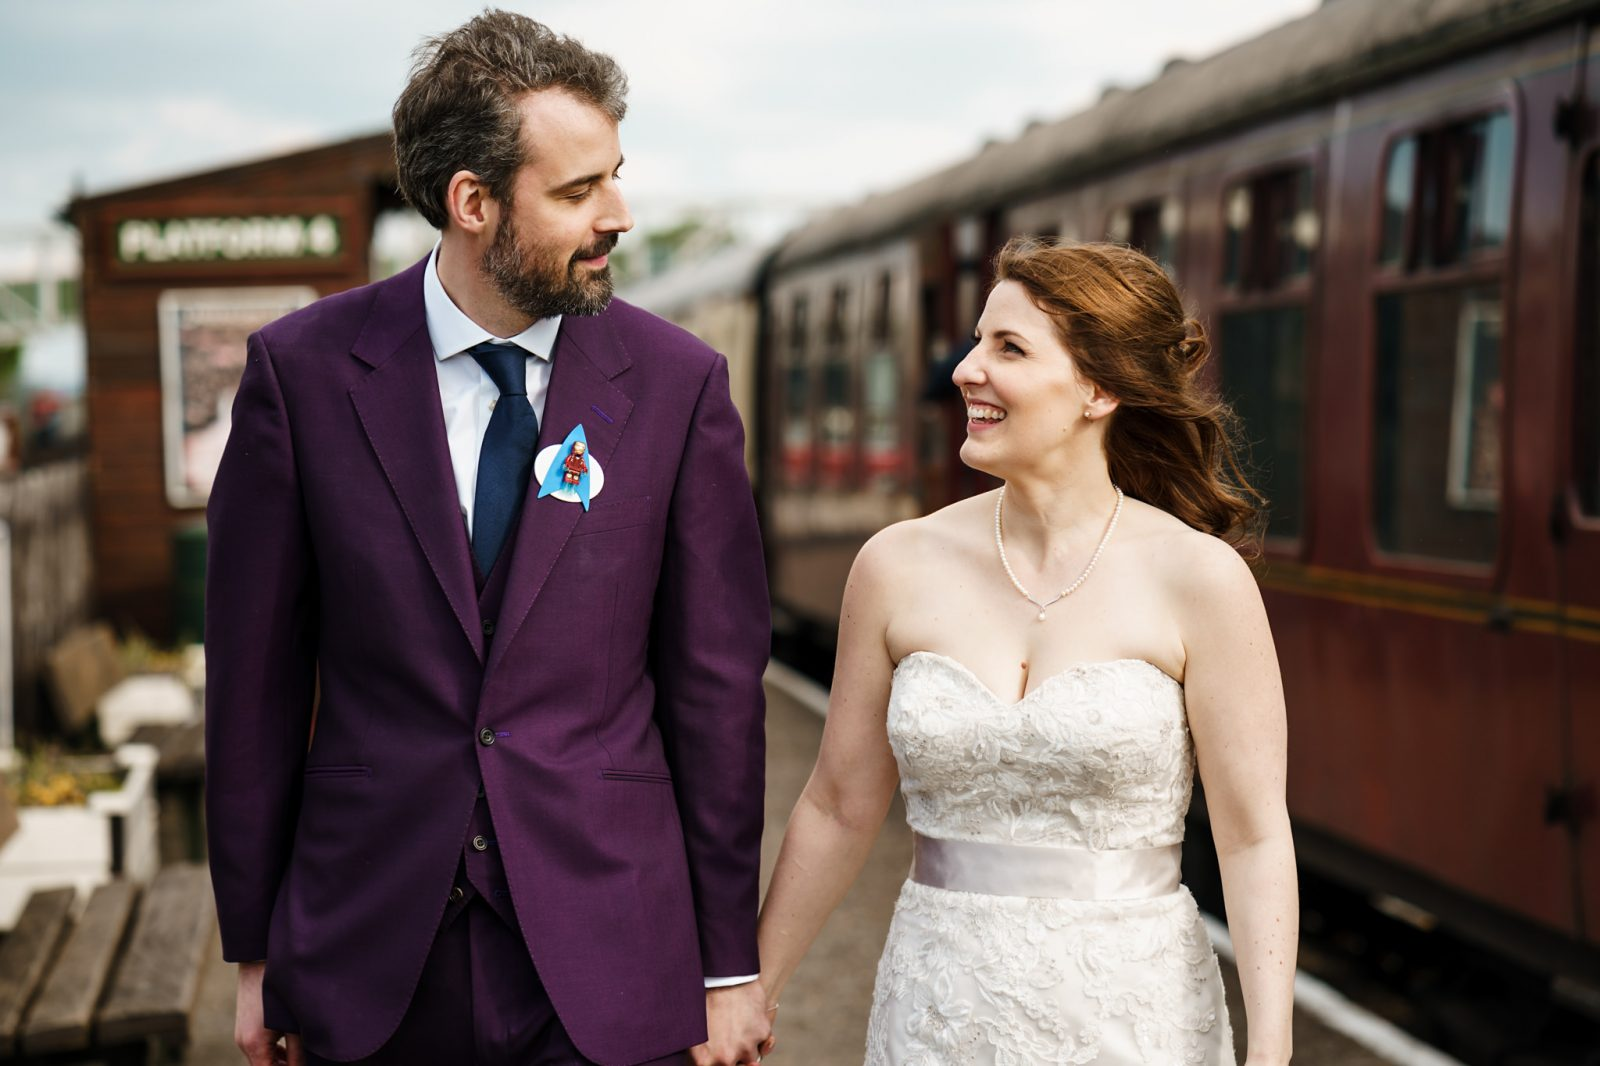 Steam trains and superheroes – Laura & Ed